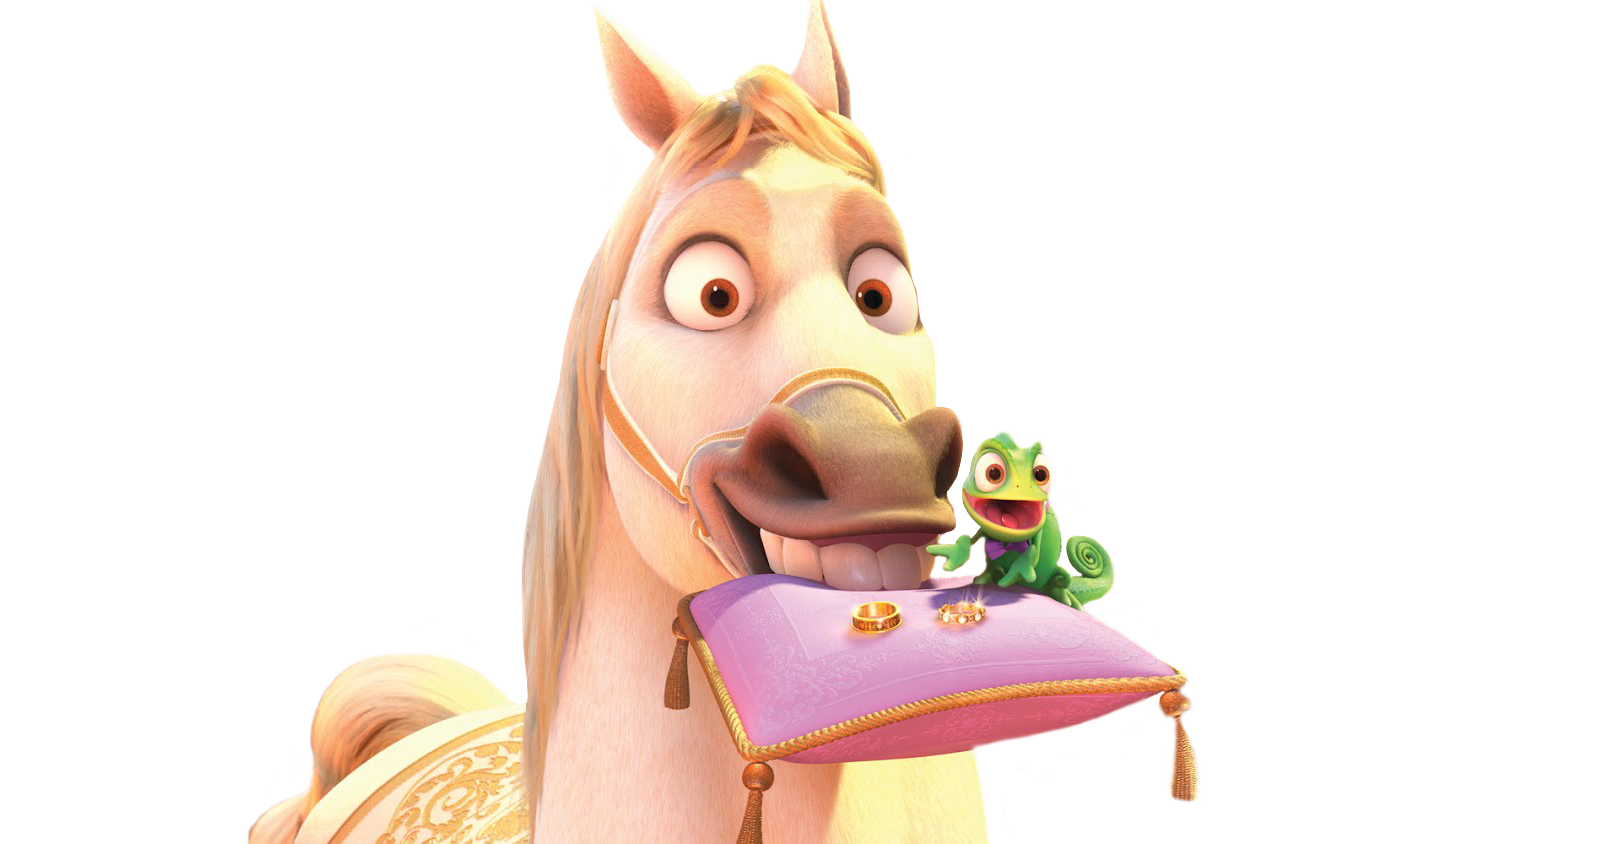 Maximus and Pascal